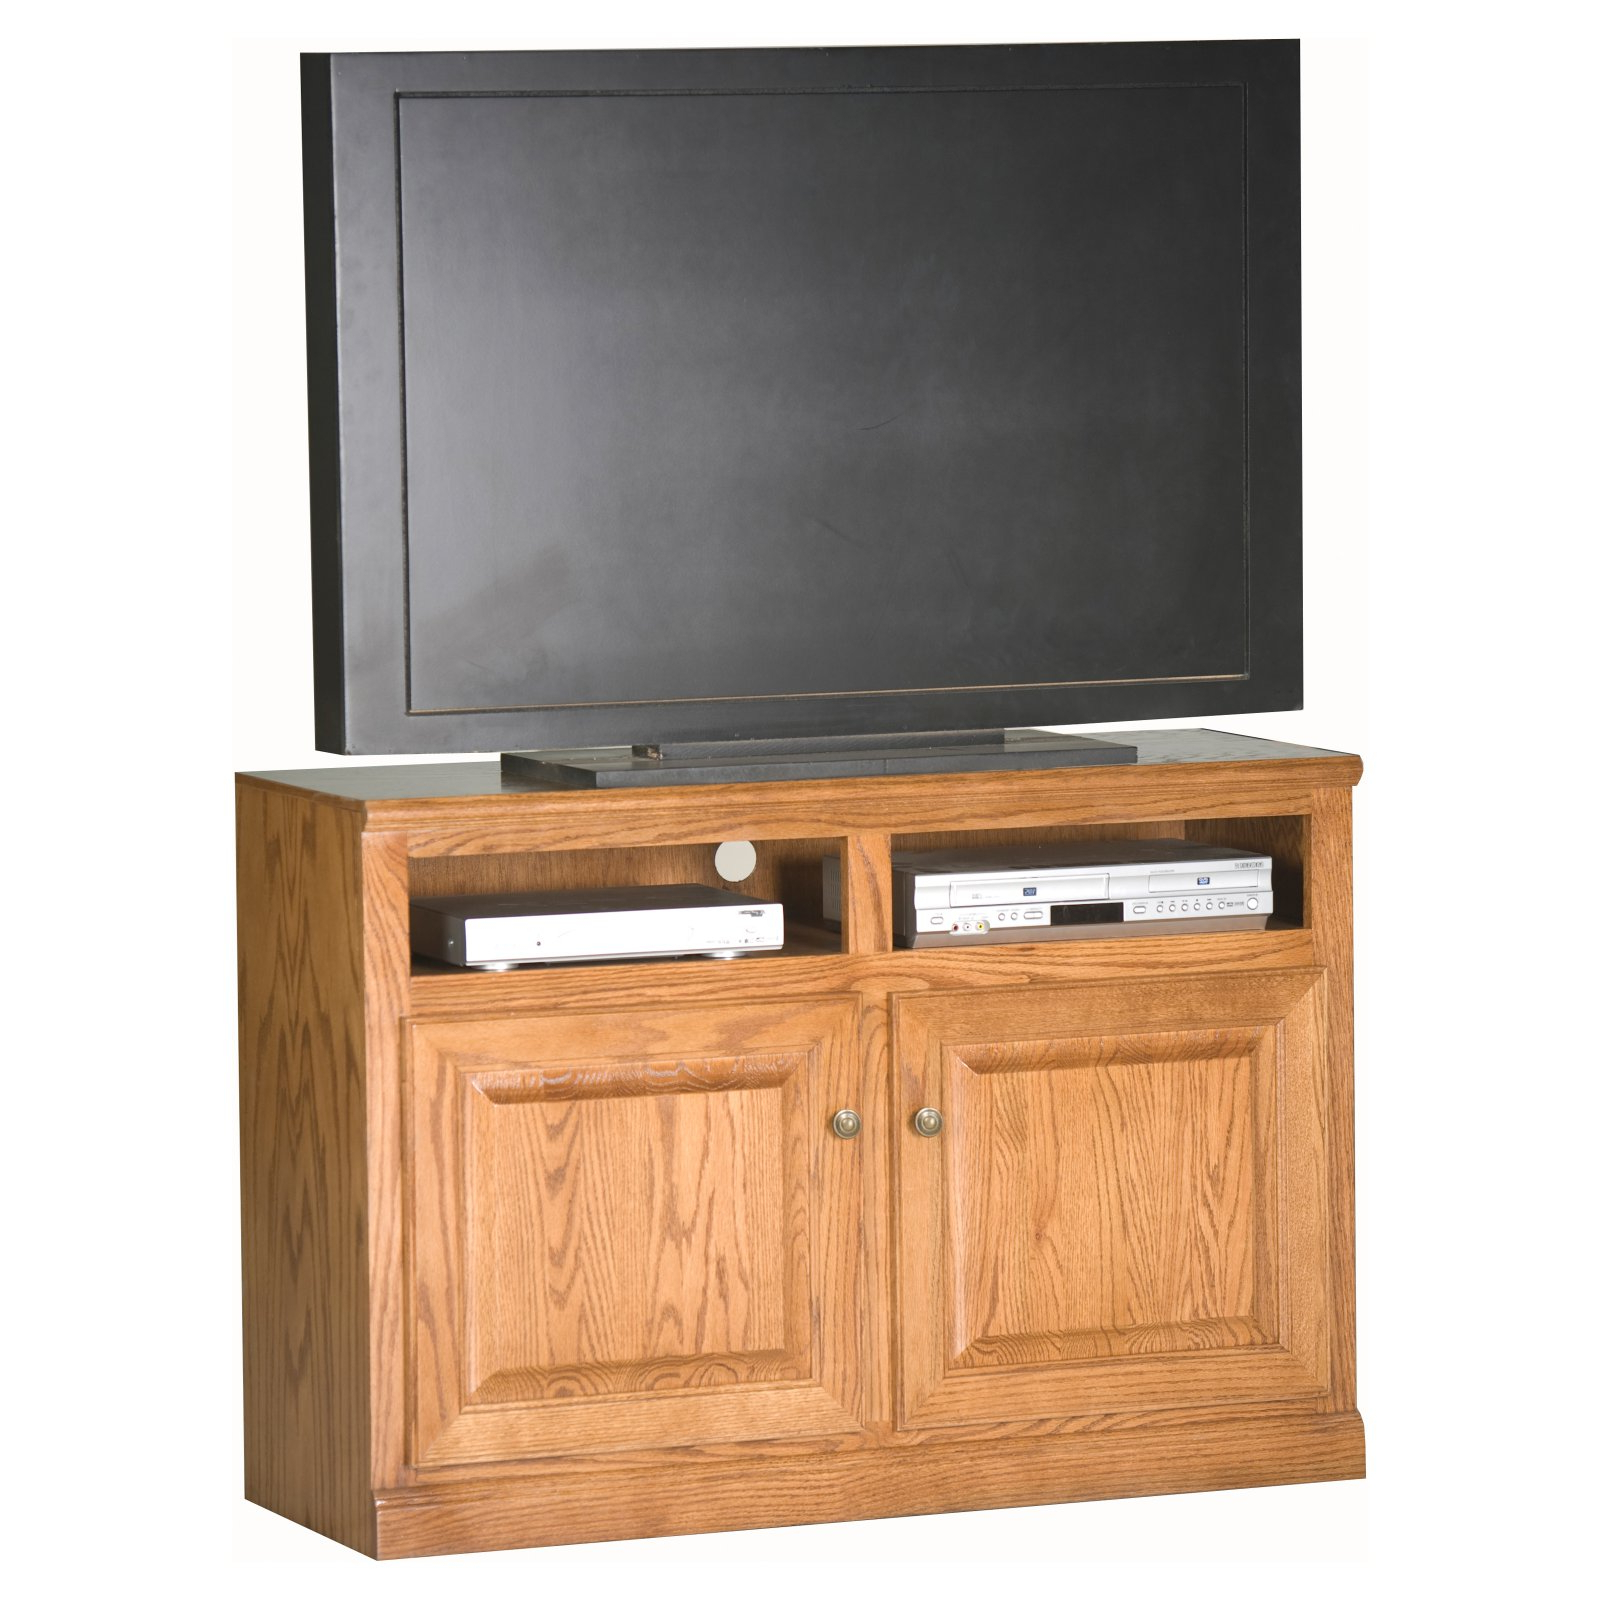 2018 Eagle Furniture Classic Oak Customizable 45 In. Tv Stand – Walmart Intended For Kilian Grey 49 Inch Tv Stands (Gallery 17 of 20)